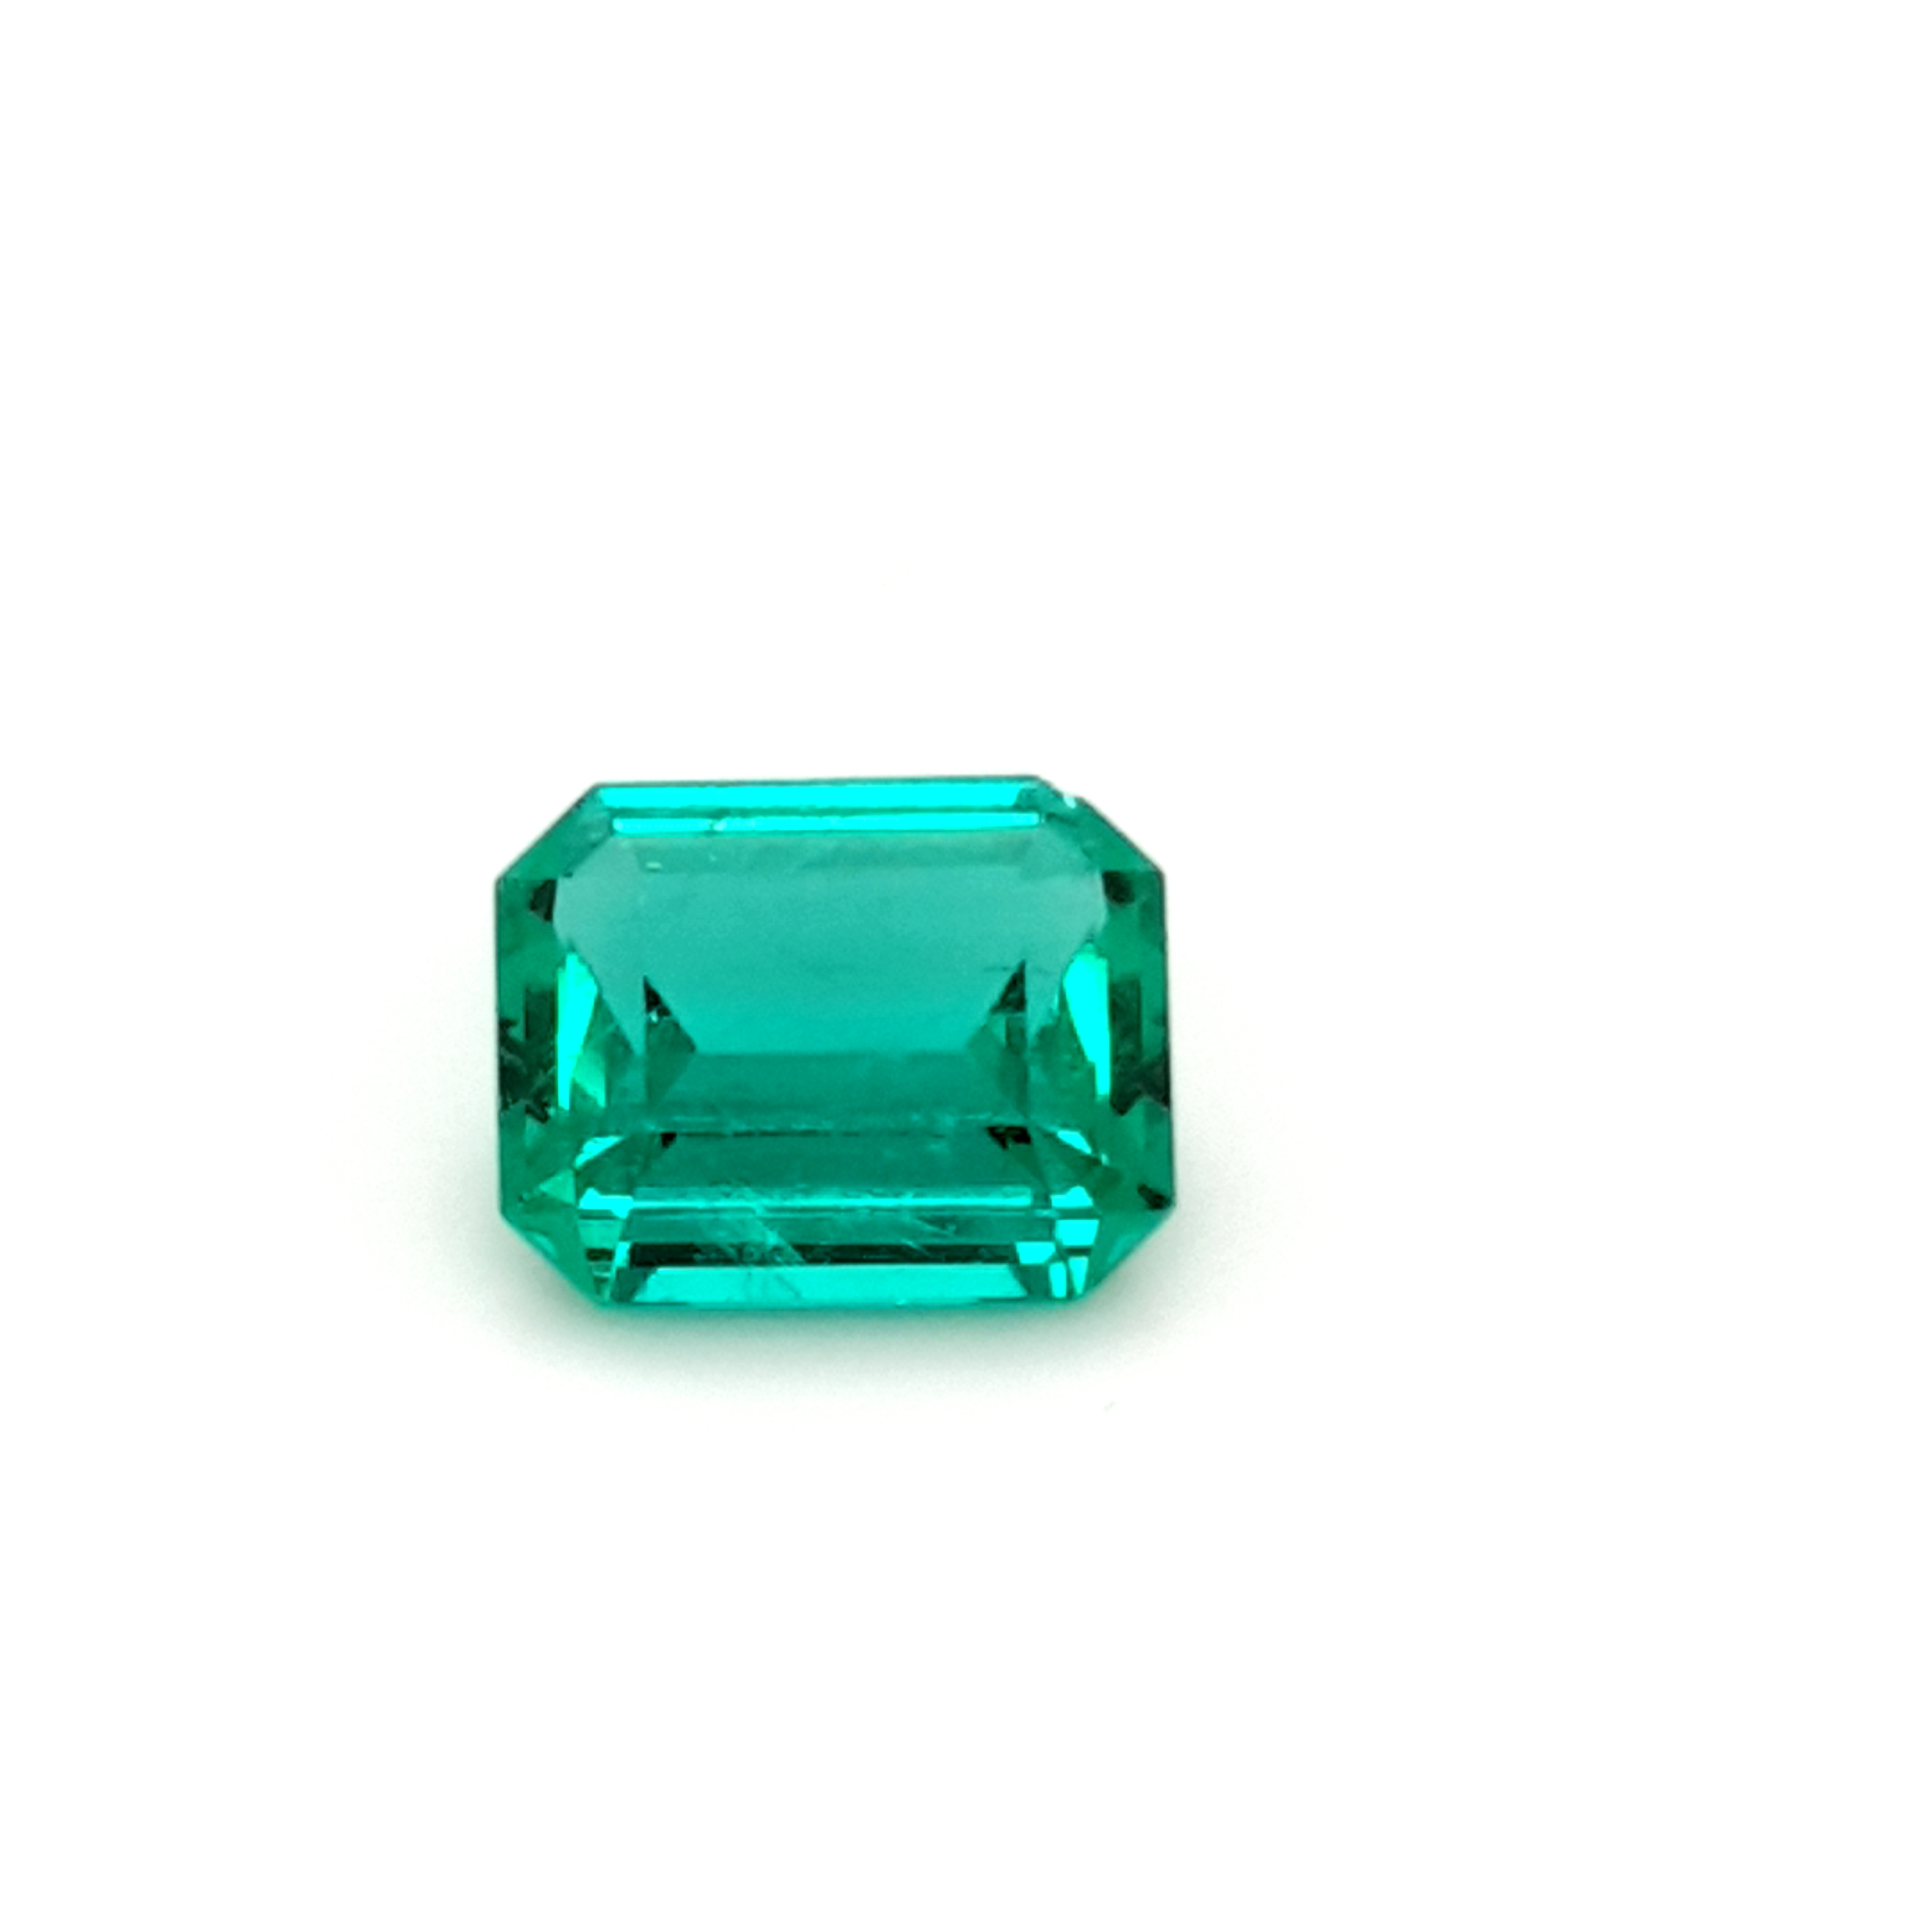 3,48ct. Emerald from Colombia cert. EML20C3 ClaudiaHamann__2021-03-25-17-47-49